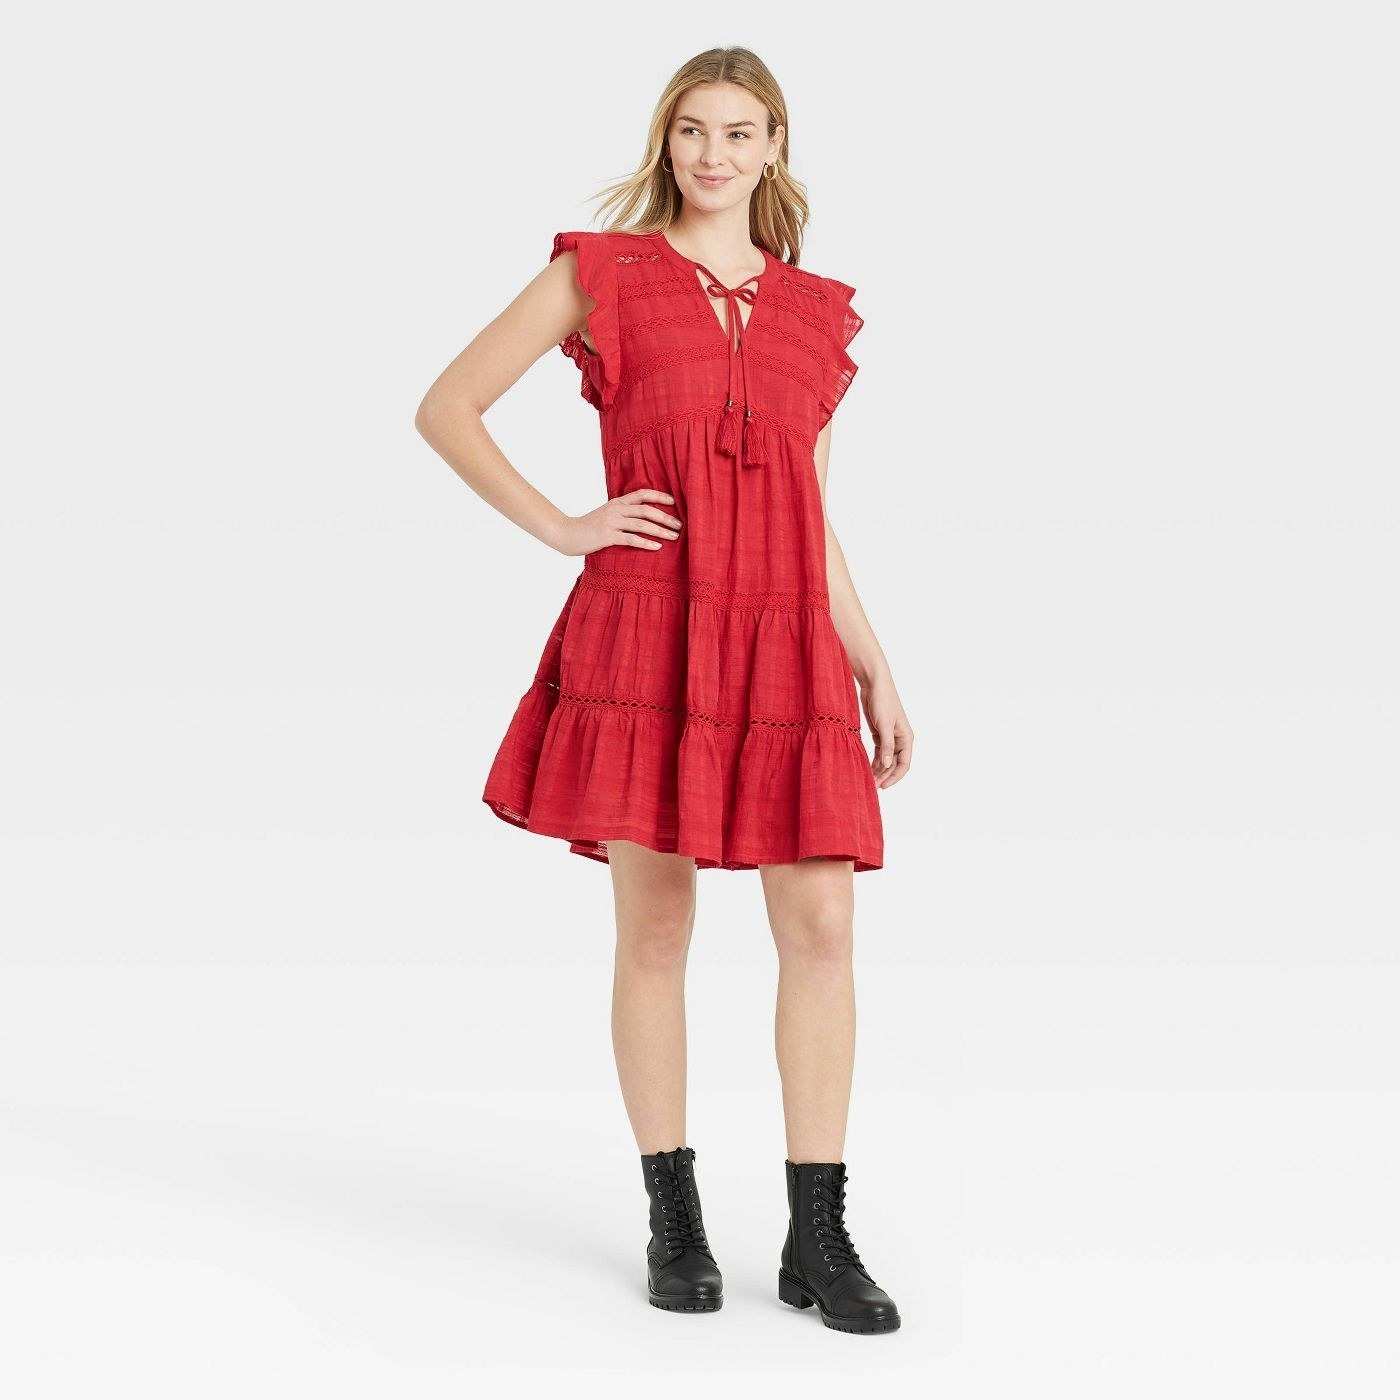 Model wearing red dress with ruffled sleeves, dress stops above the knee